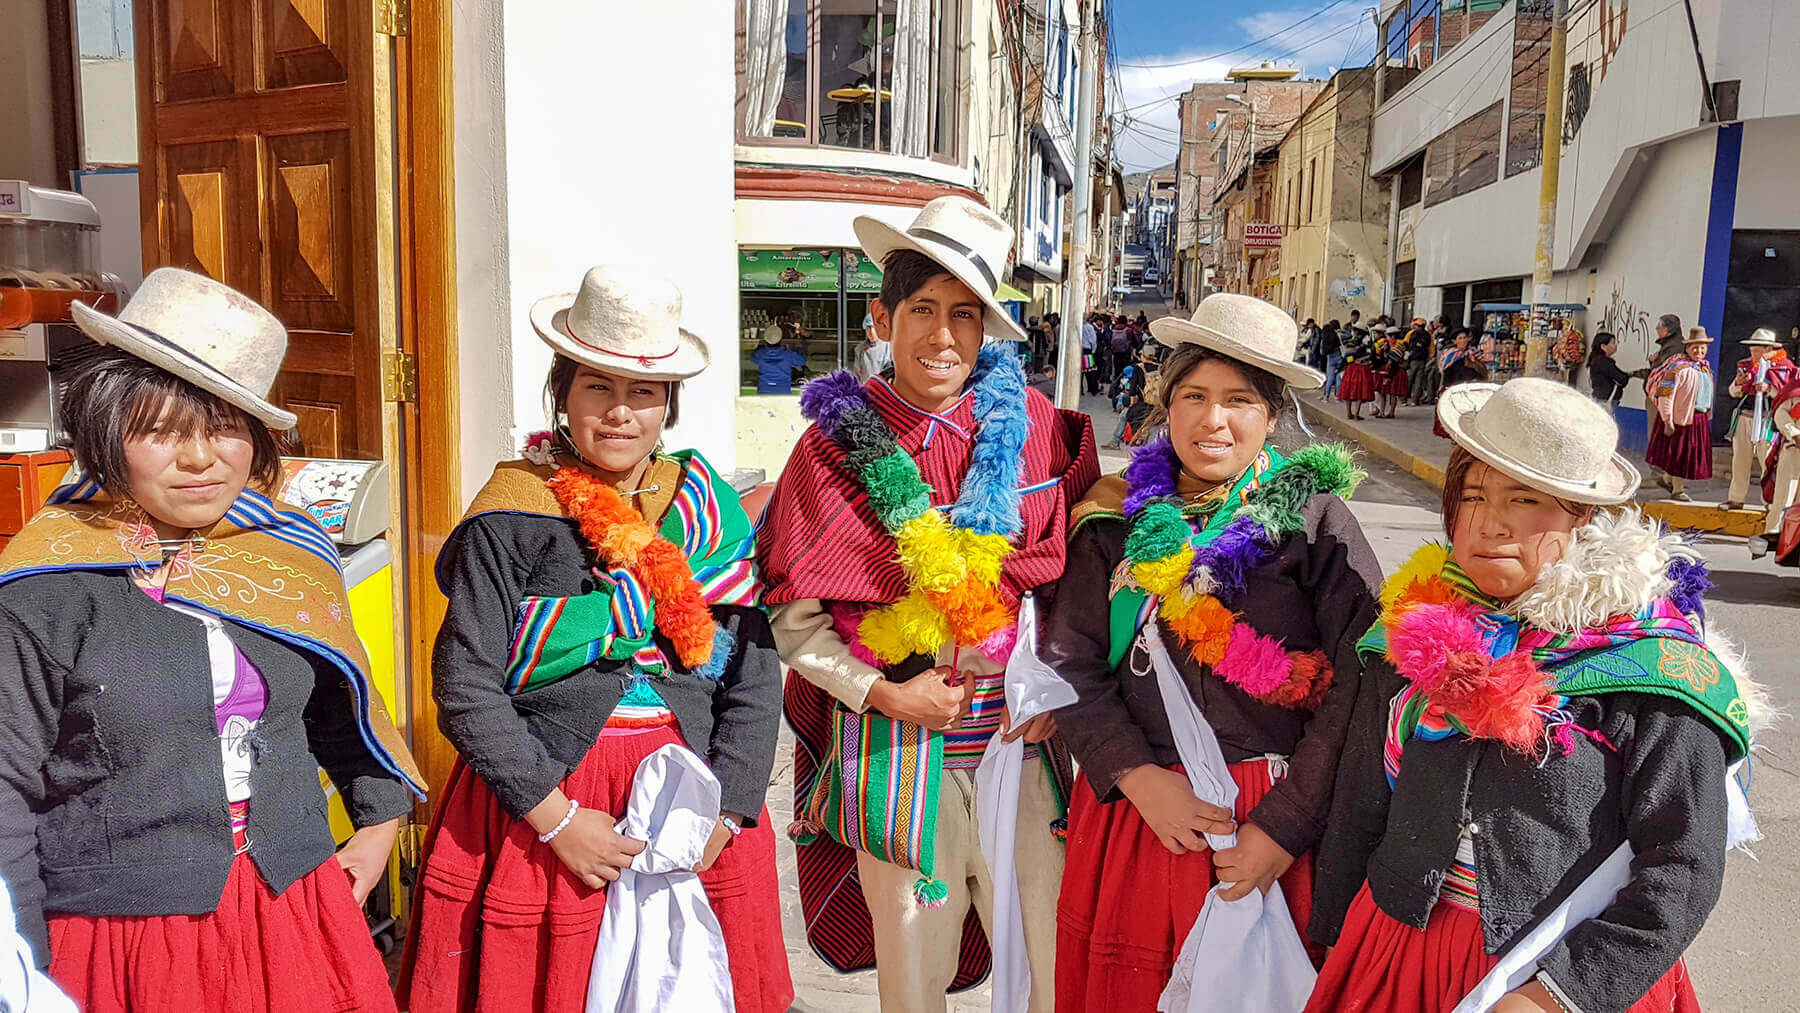 Peruvian ladies in traditional clothing in Puno at Lake Titicaca